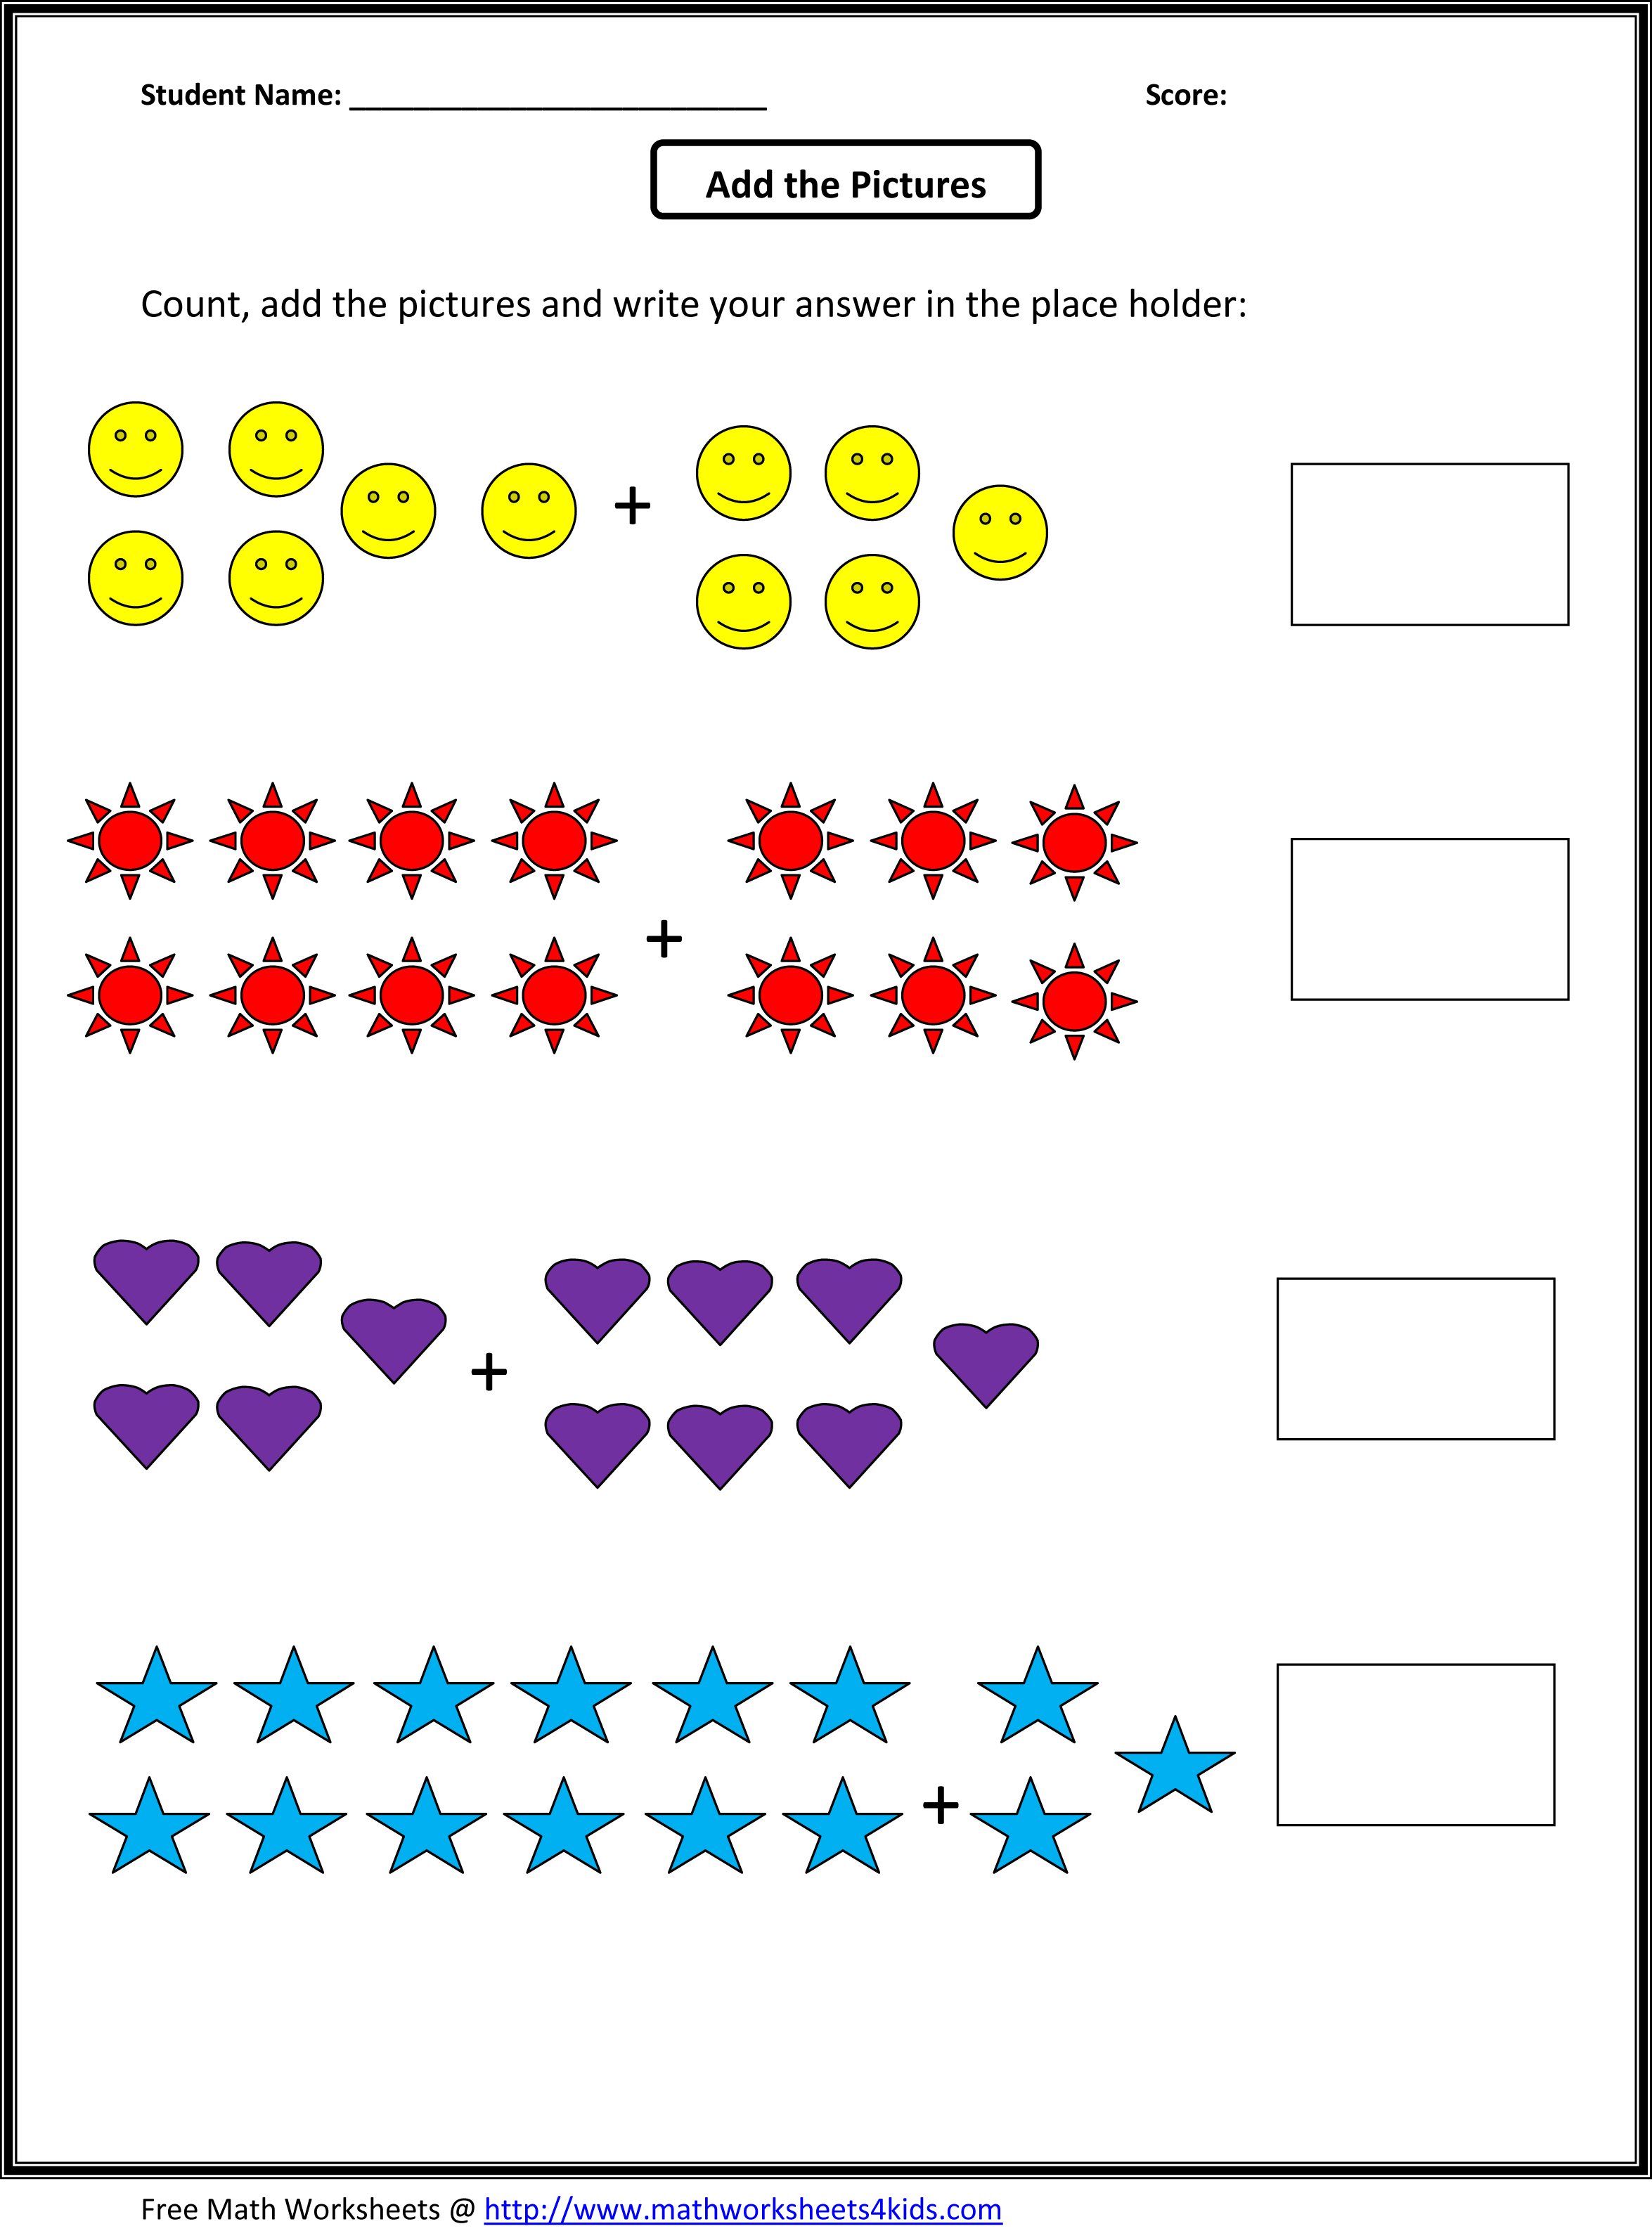 Weirdmailus  Surprising Grade  Maths Worksheet  Reocurent With Great Math Worksheets For St Grade Free  Reocurent With Charming Map Of Us Worksheet Also Dictionary Worksheets For Rd Grade In Addition Main Idea Worksheets For First Grade And Vocabulary Worksheets Th Grade As Well As Relative Adverbs Worksheets Th Grade Additionally Circle Graph Worksheets Th Grade From Reocurentcom With Weirdmailus  Great Grade  Maths Worksheet  Reocurent With Charming Math Worksheets For St Grade Free  Reocurent And Surprising Map Of Us Worksheet Also Dictionary Worksheets For Rd Grade In Addition Main Idea Worksheets For First Grade From Reocurentcom